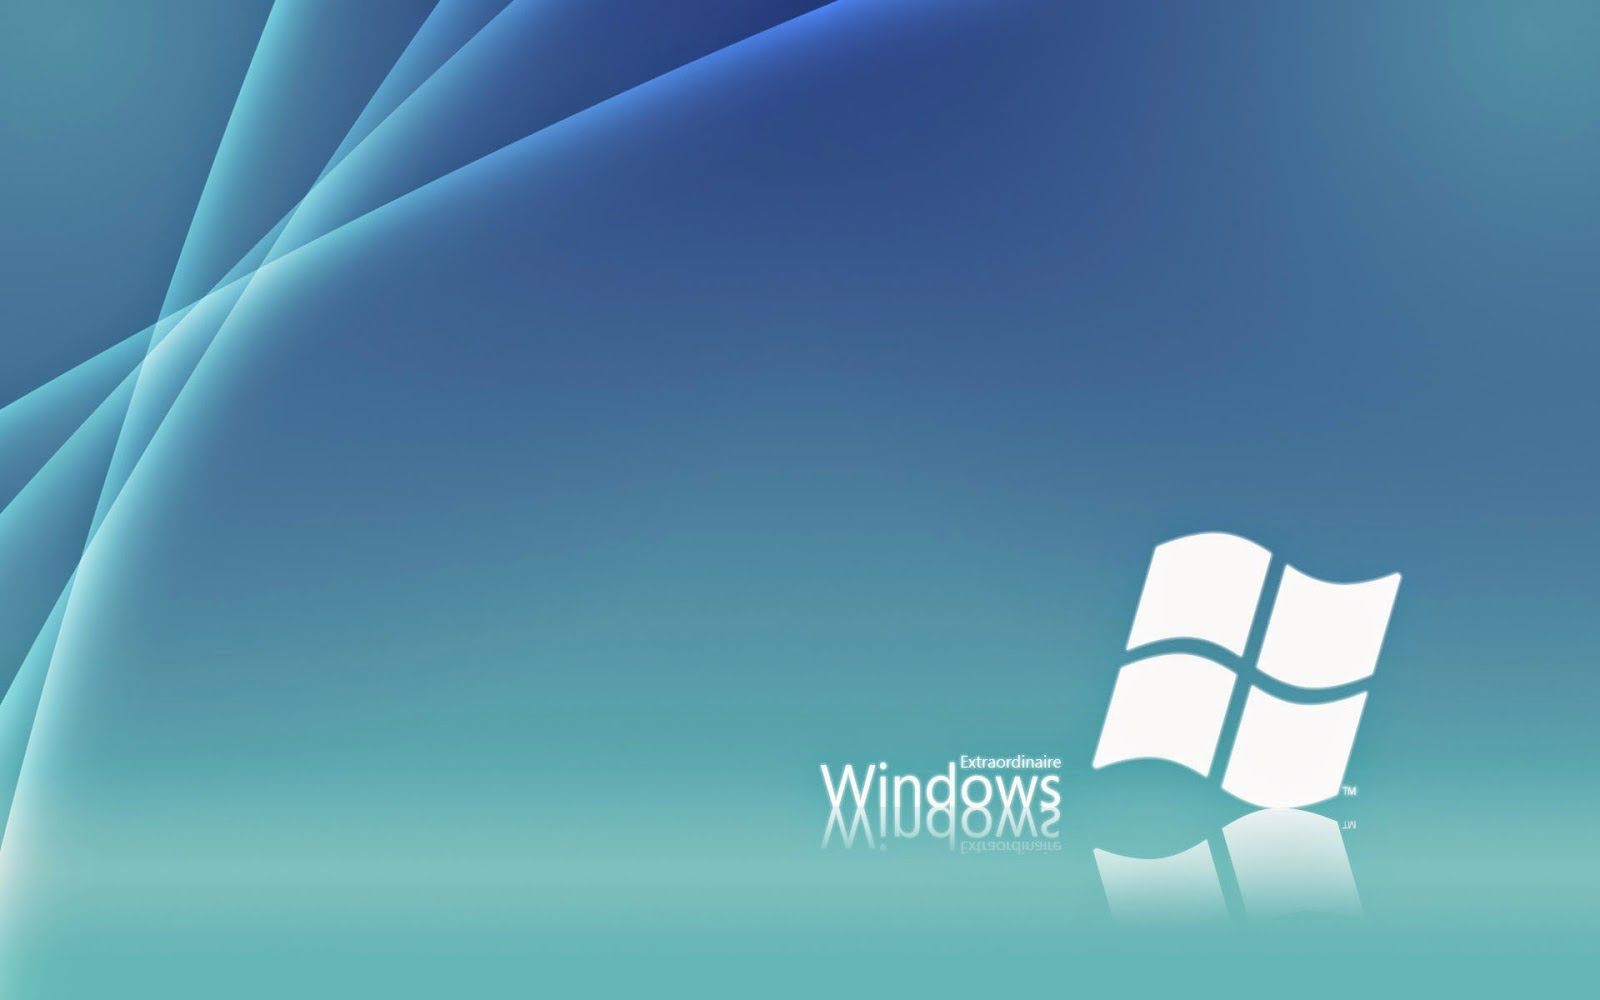 wallpaper win 7 3d